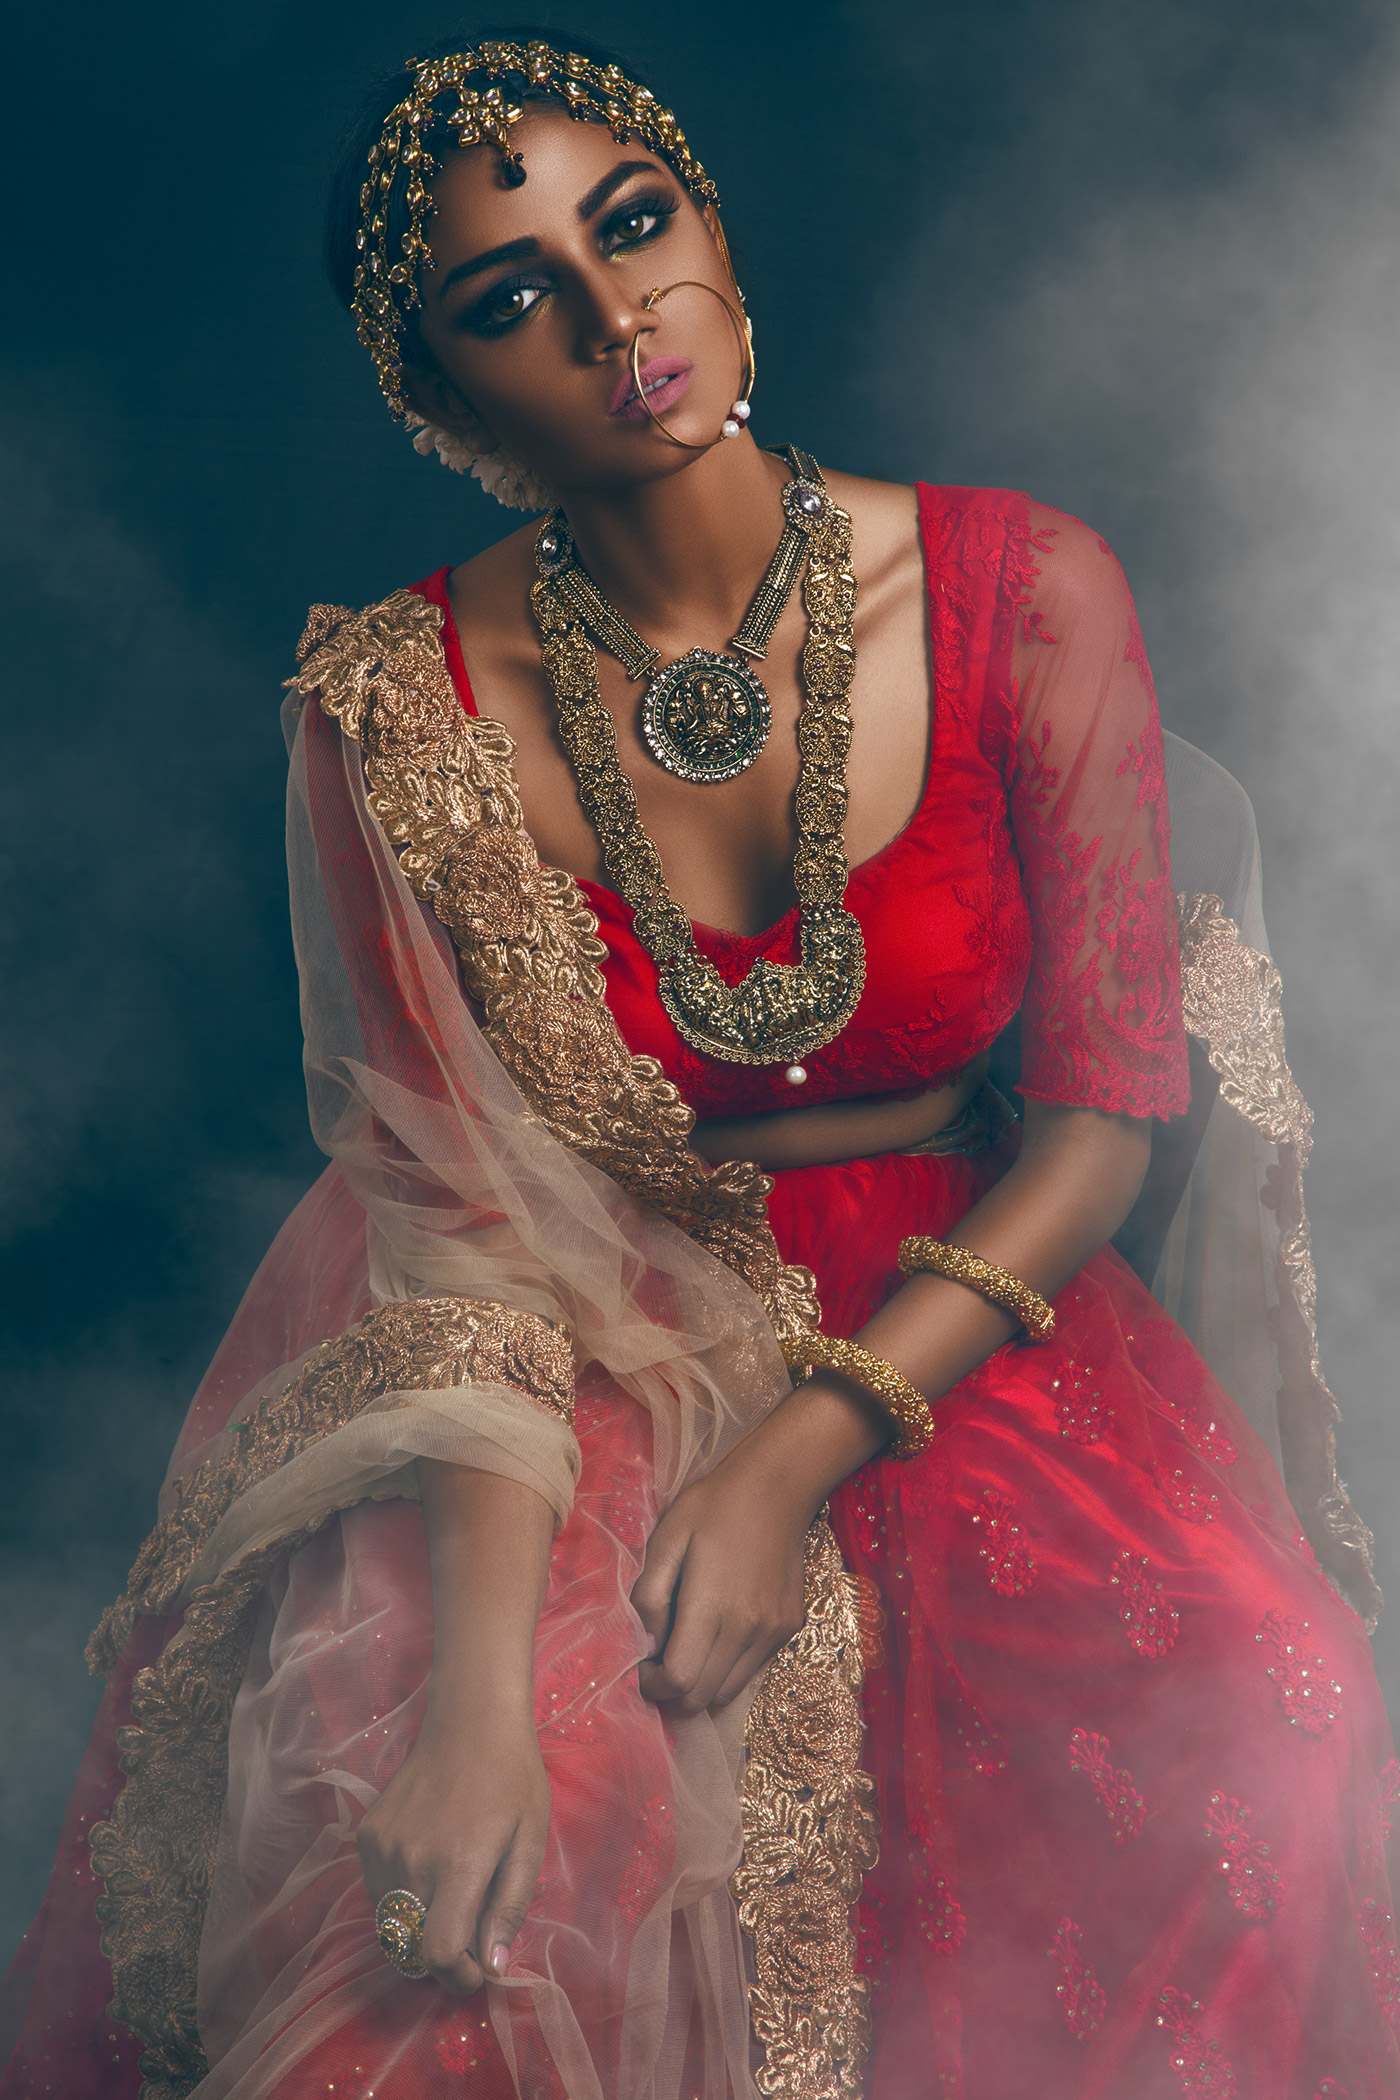 Beautiful Indian bride in traditional wedding dress and